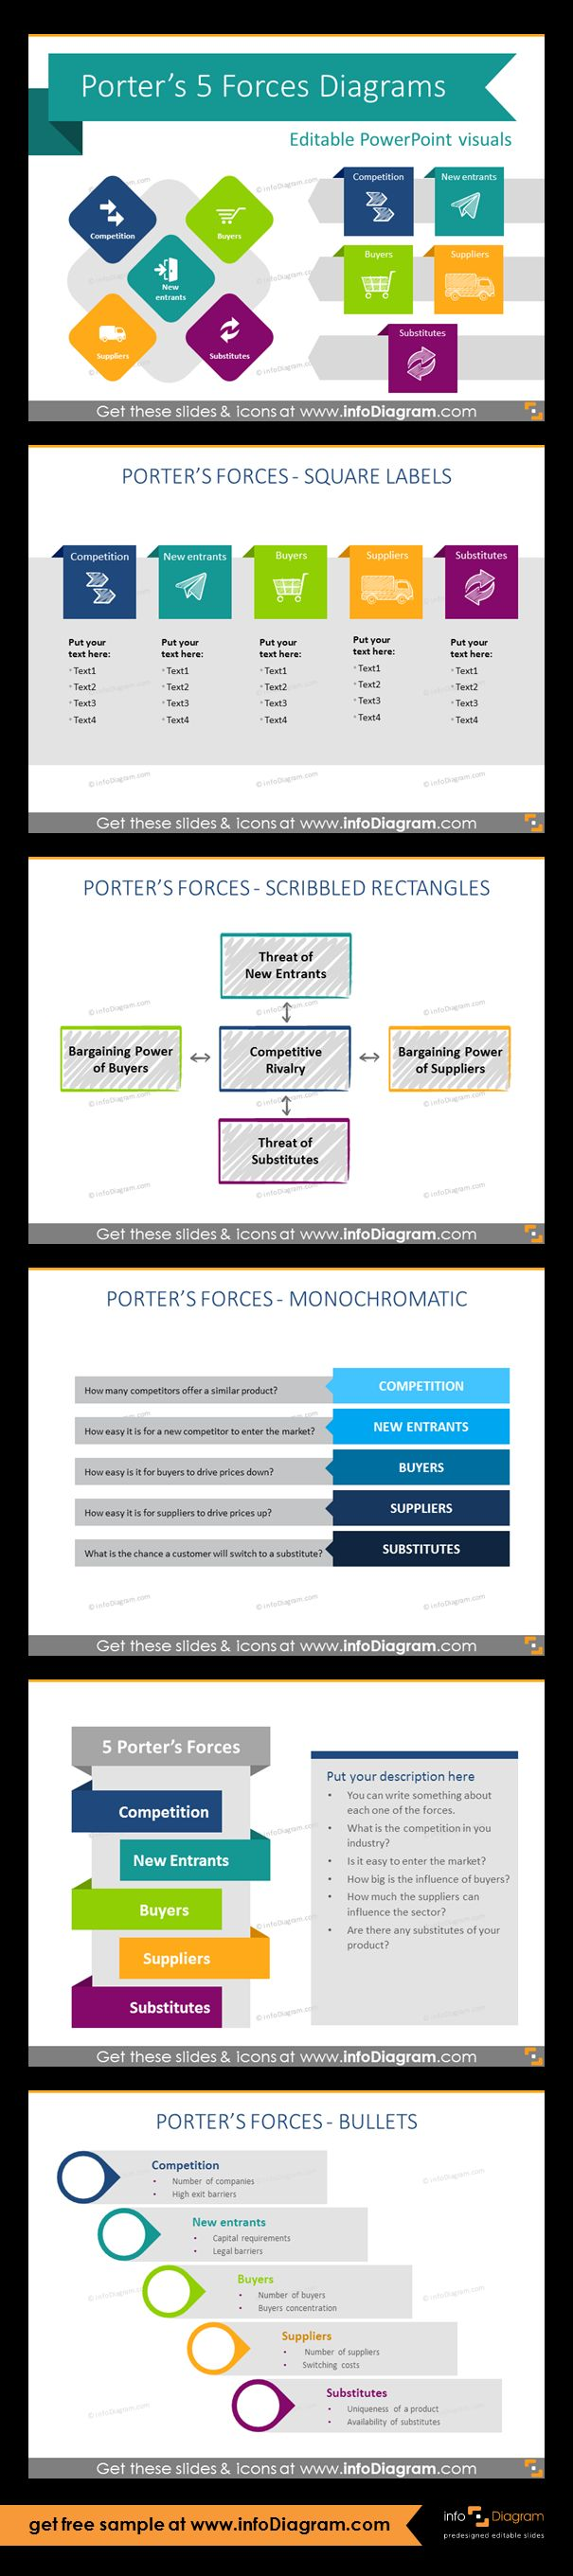 Collection of Porter's Forces diagrams as pre-designed PowerPoint slides. Set of various diagrams representing Porter's five forces: buyers, suppliers, competition, new entrants and product substitutes. Porter's Forces in variations: square labels, scribbled rectangles, monochromatic, colorful ribbons, bullets with examples. Presentation template suitable for marketing and business development presentations.